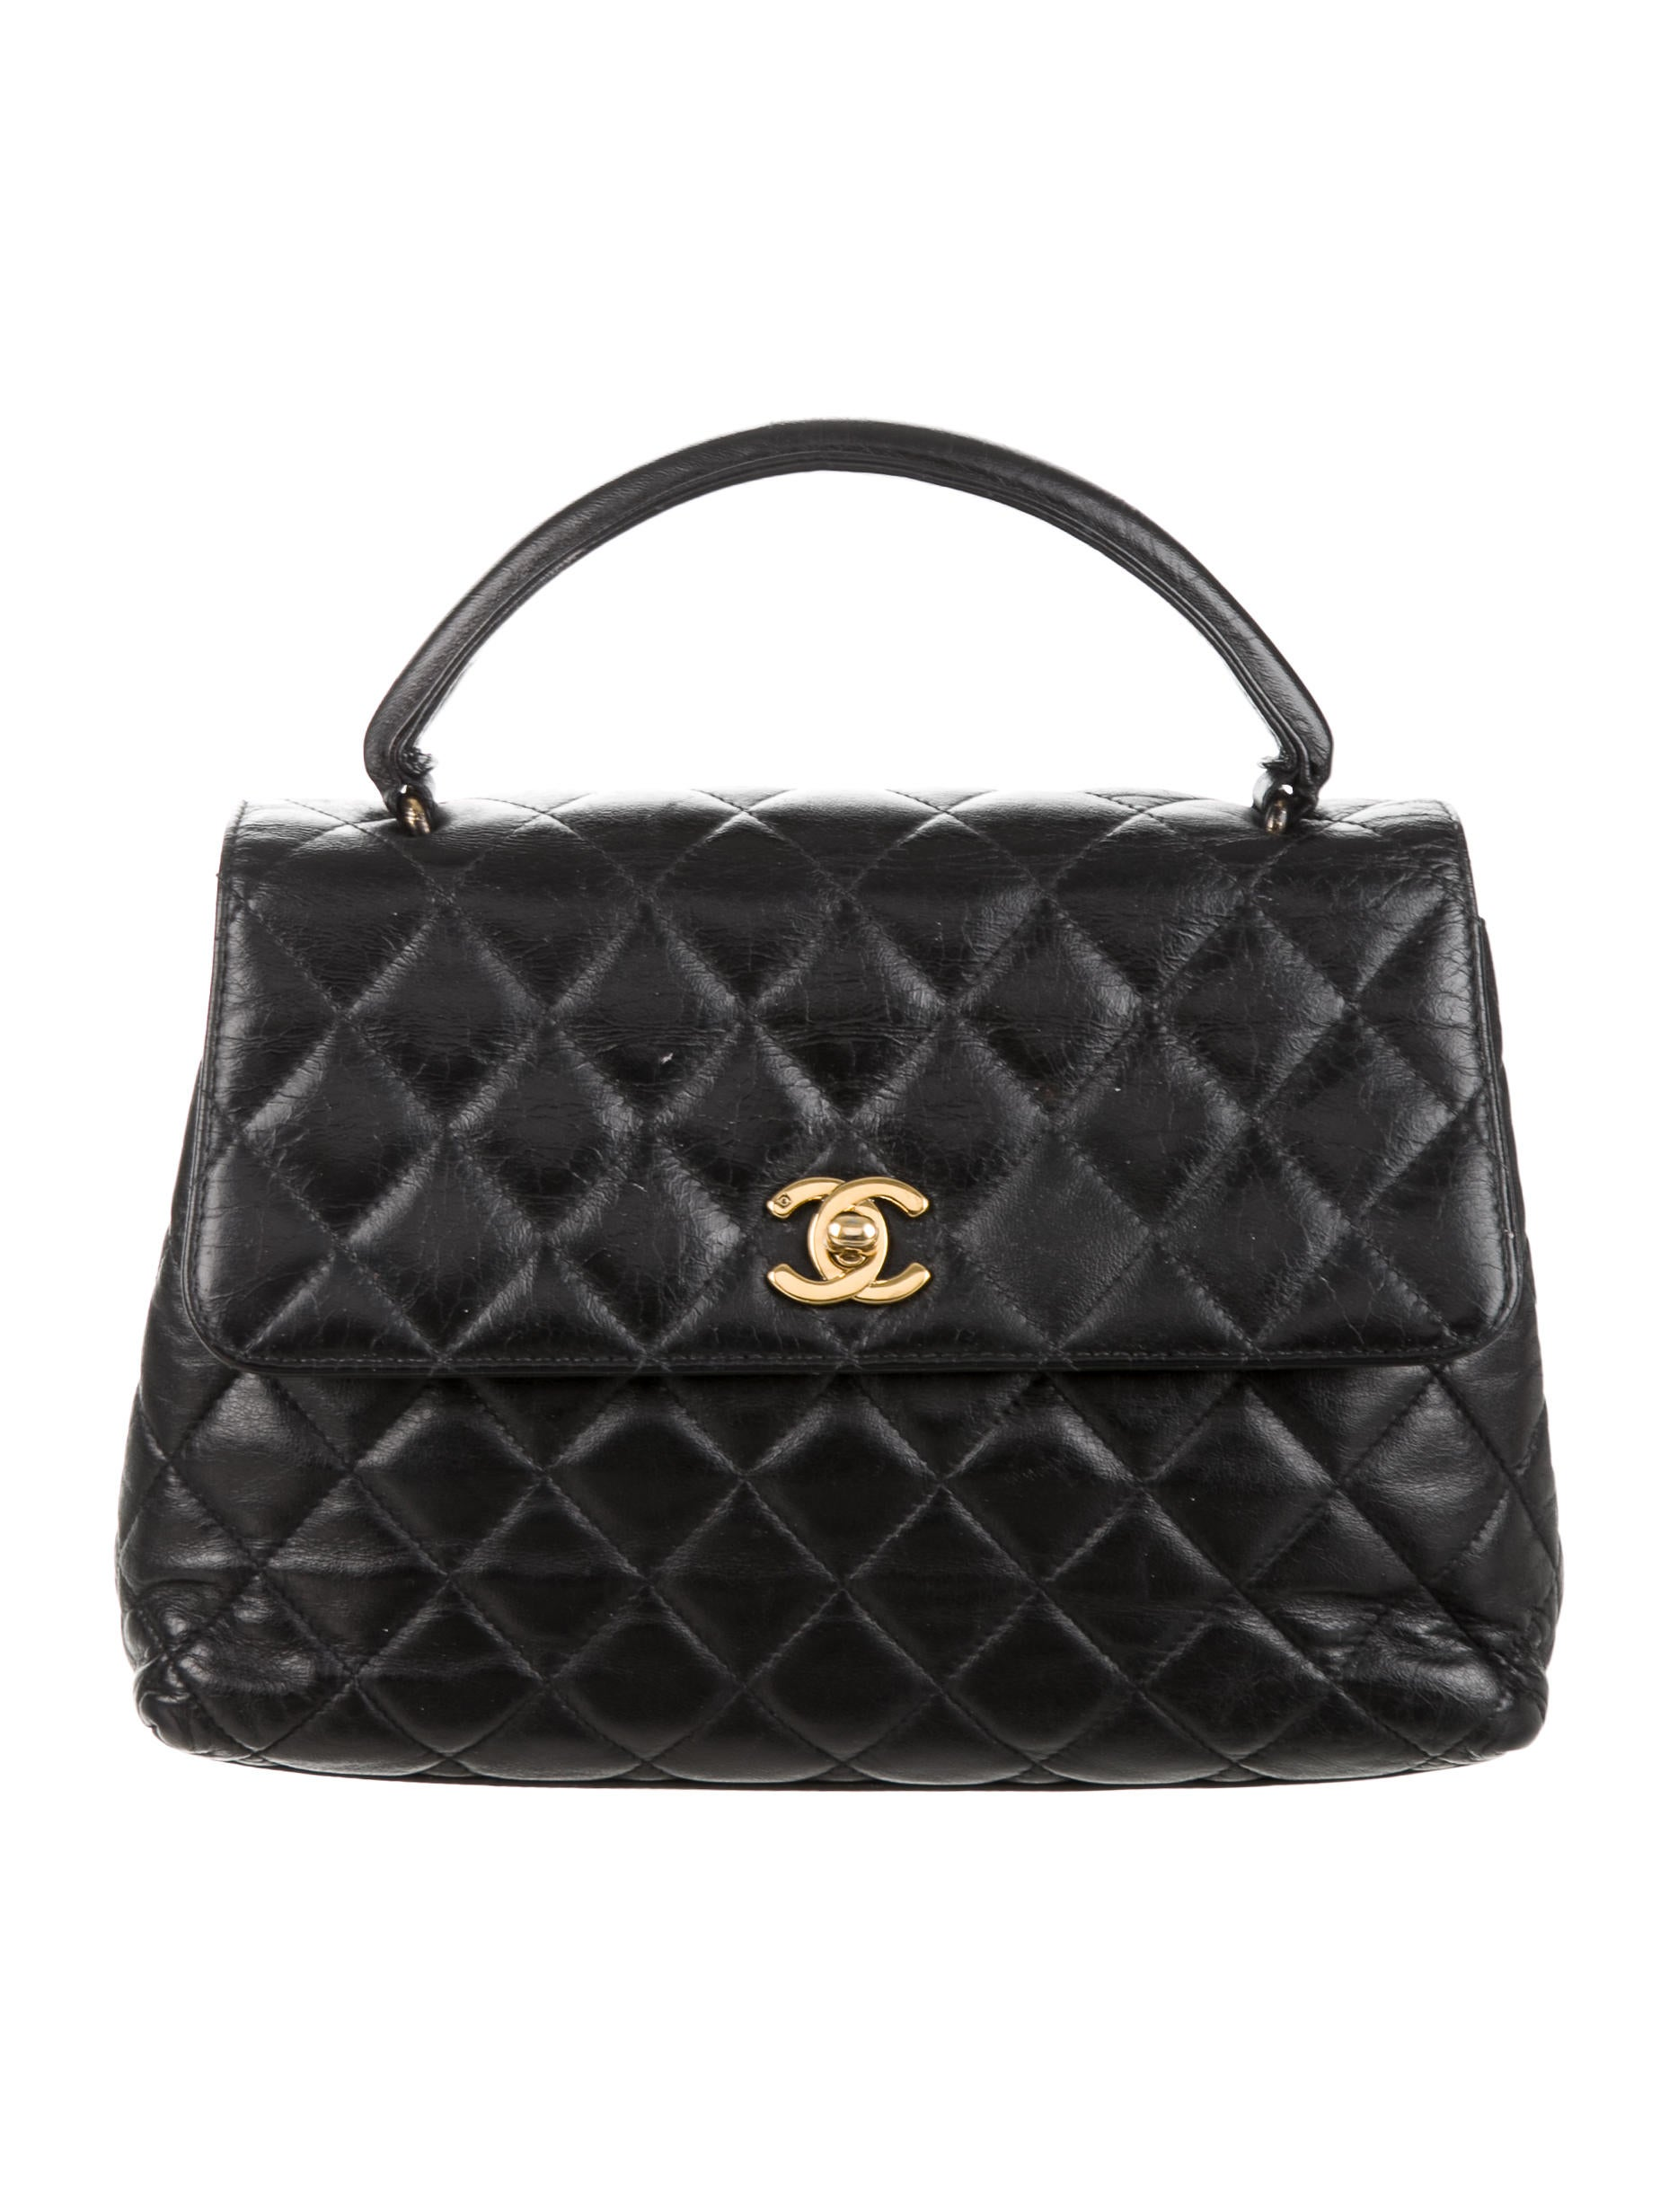 Chanel Vintage Quilted Top Handle Bag Handbags